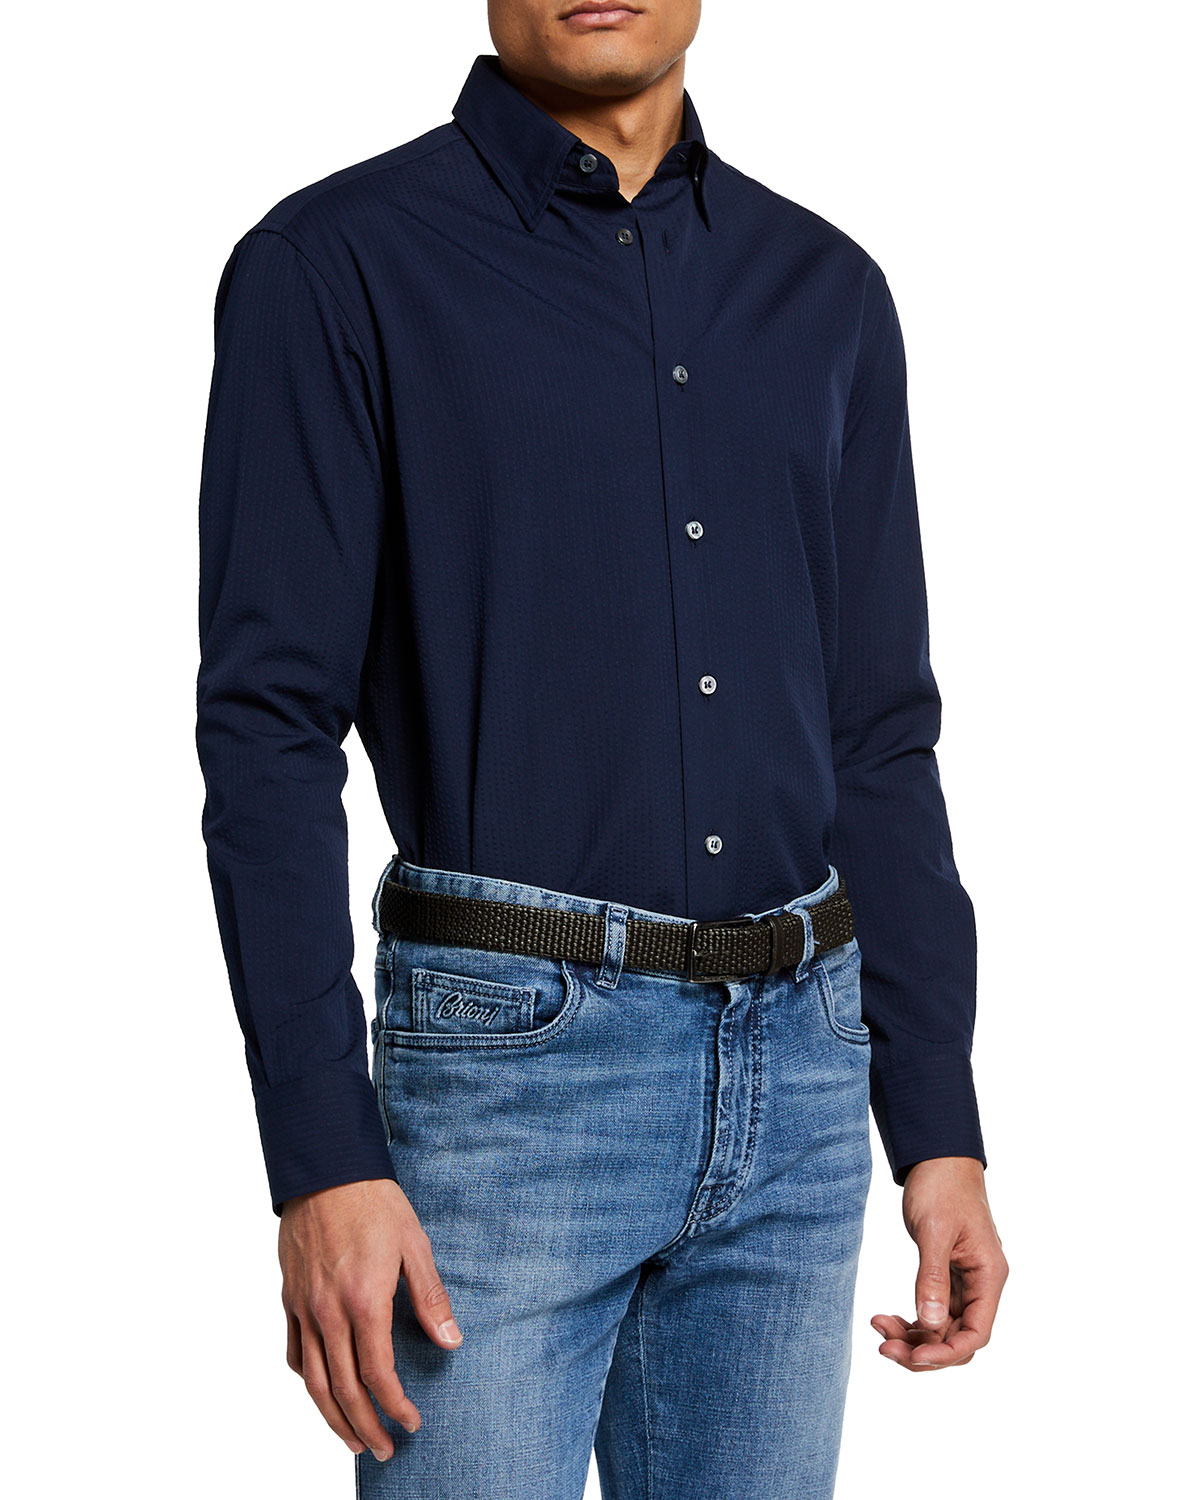 Brioni Men's Solid Seersucker Sport Shirt